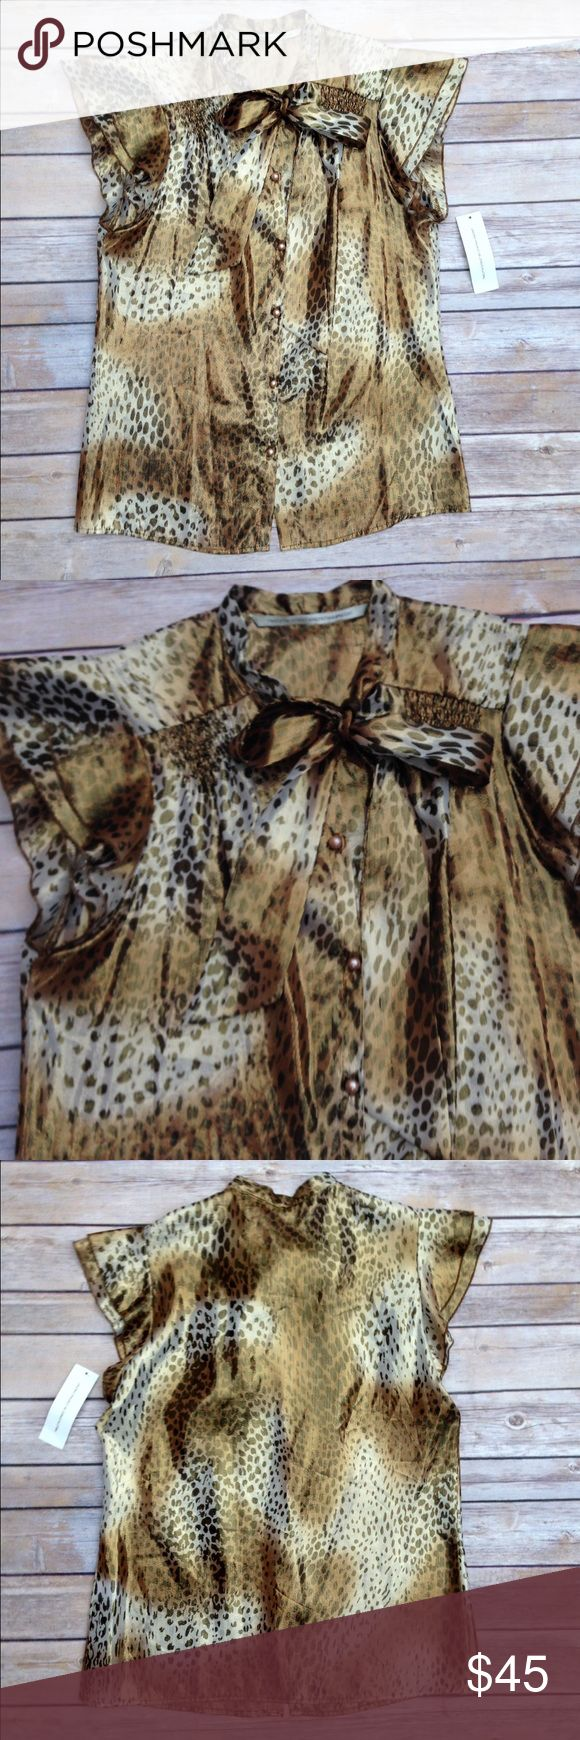 Twelfth Street Leopard Metallic Blouse Self: 73% silk, 27% metallic. Condition: New with tags. Twelfth Street by Cynthia Vincent Tops Blouses